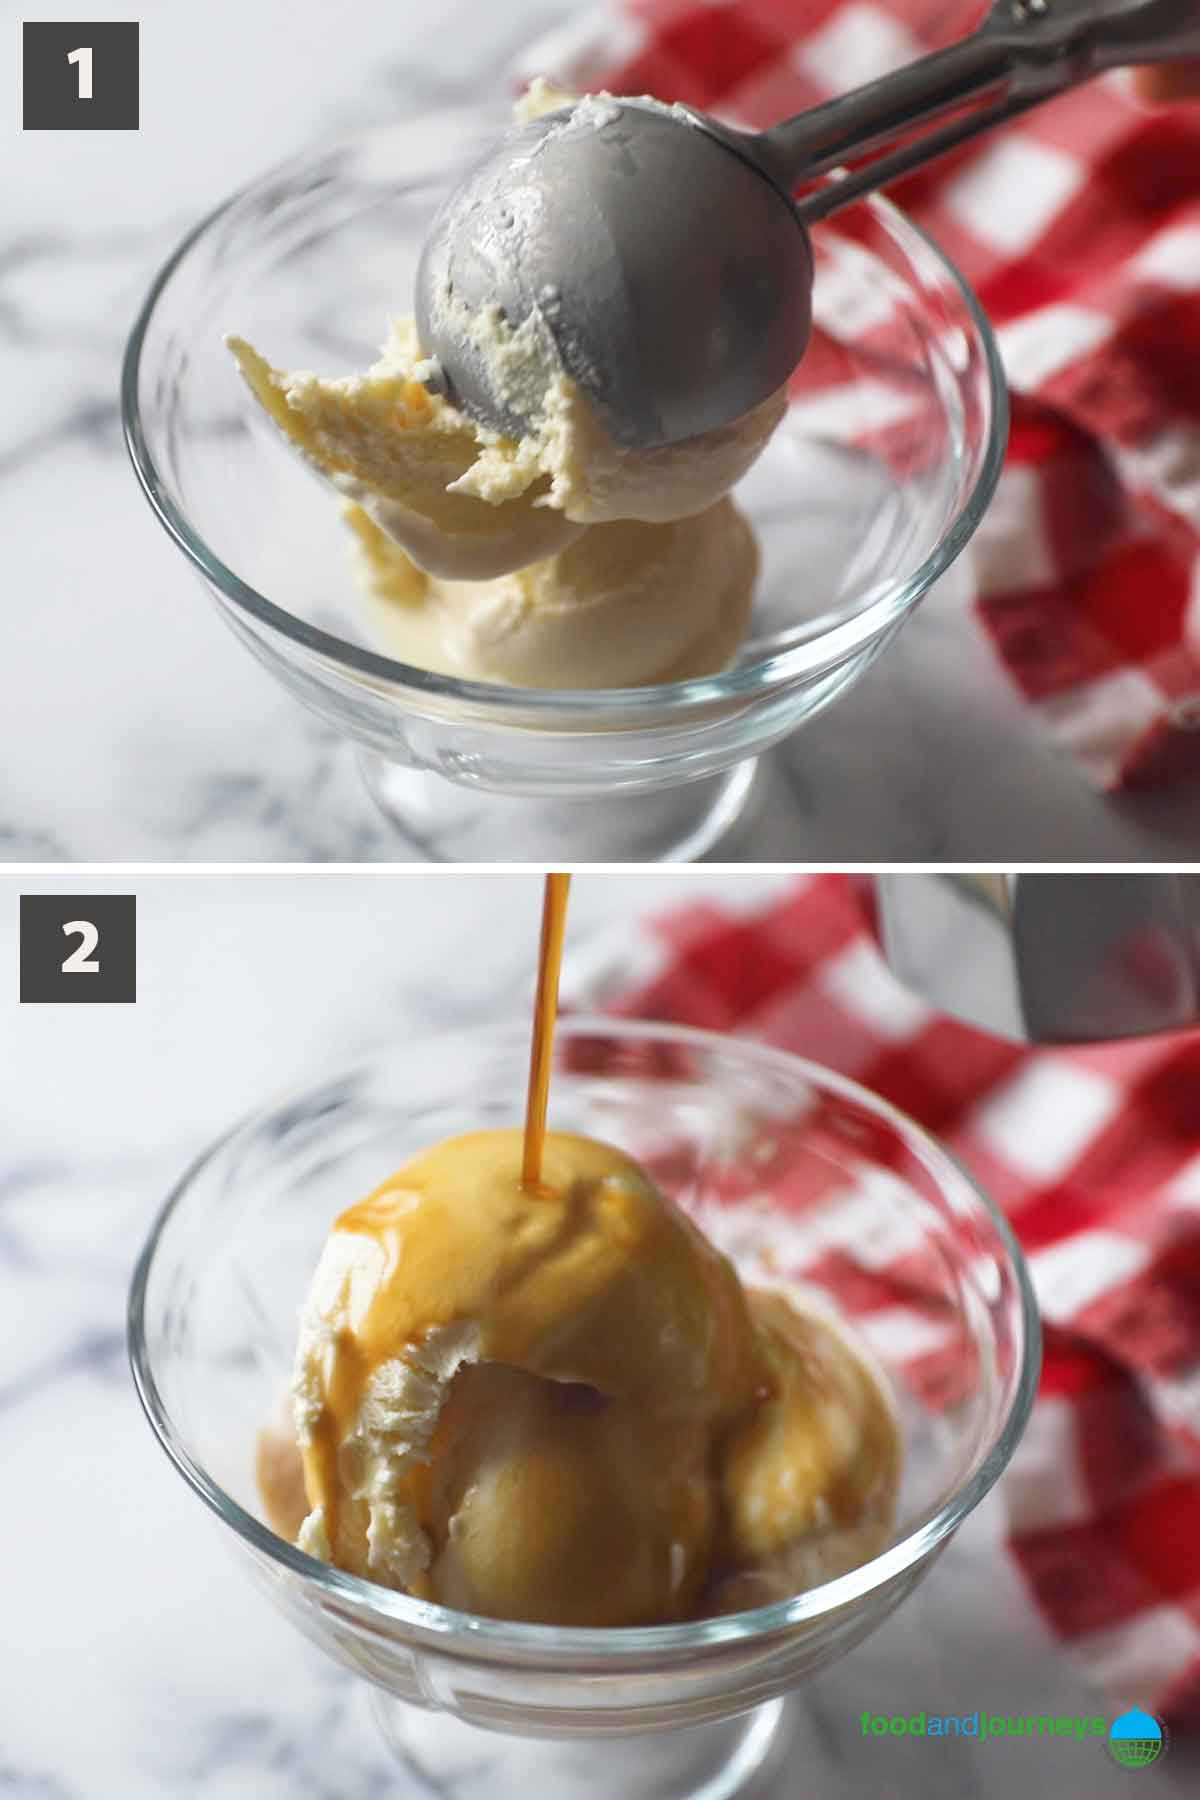 First part of a collage of images showing the step by step process of preparing affogato at home.